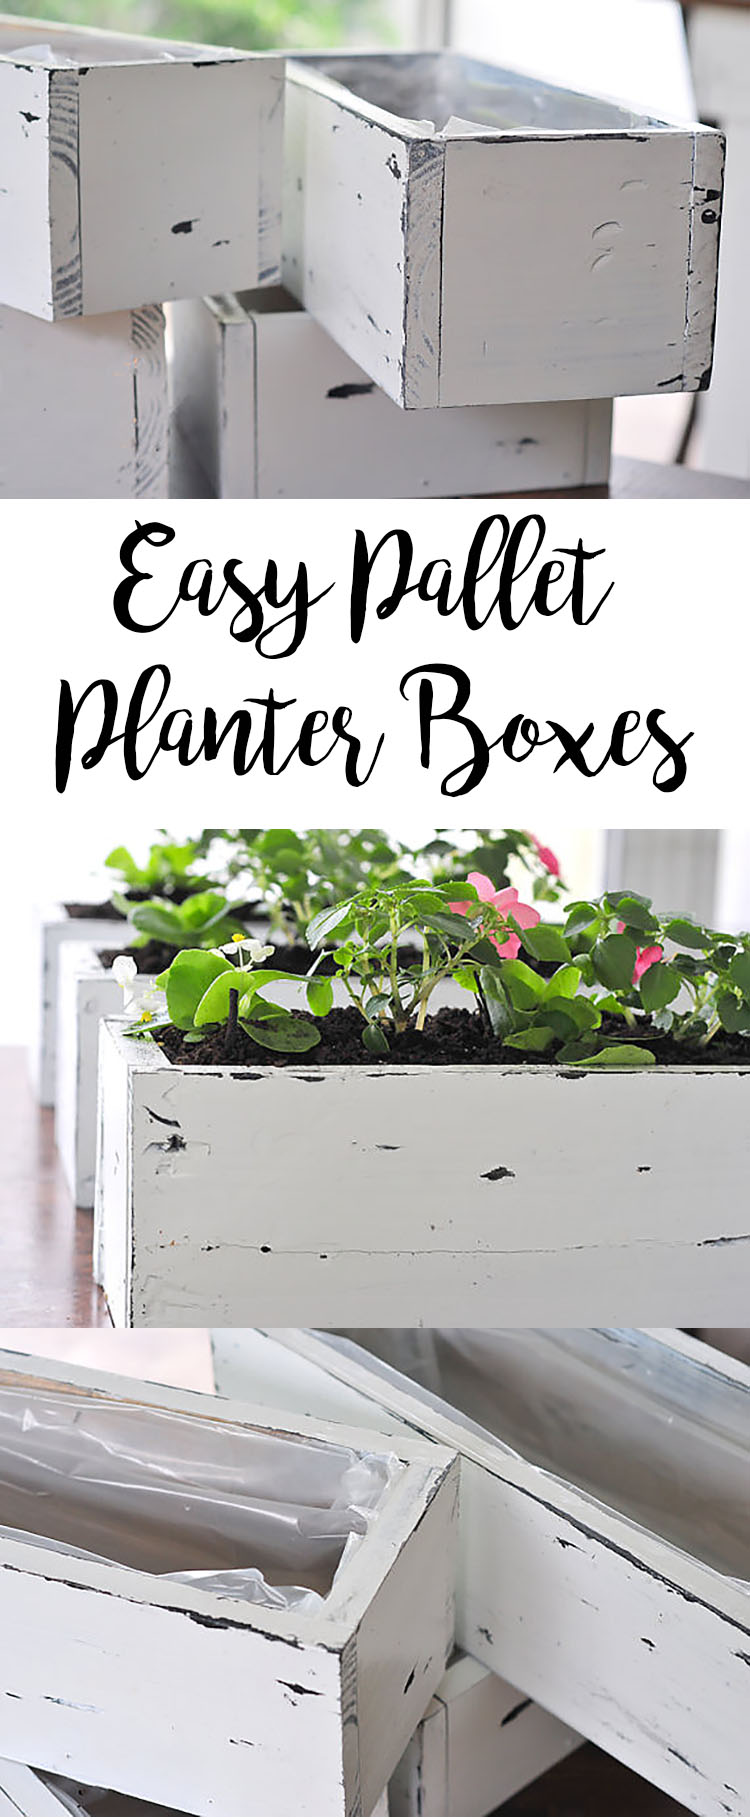 image of Pallet Planter Boxes